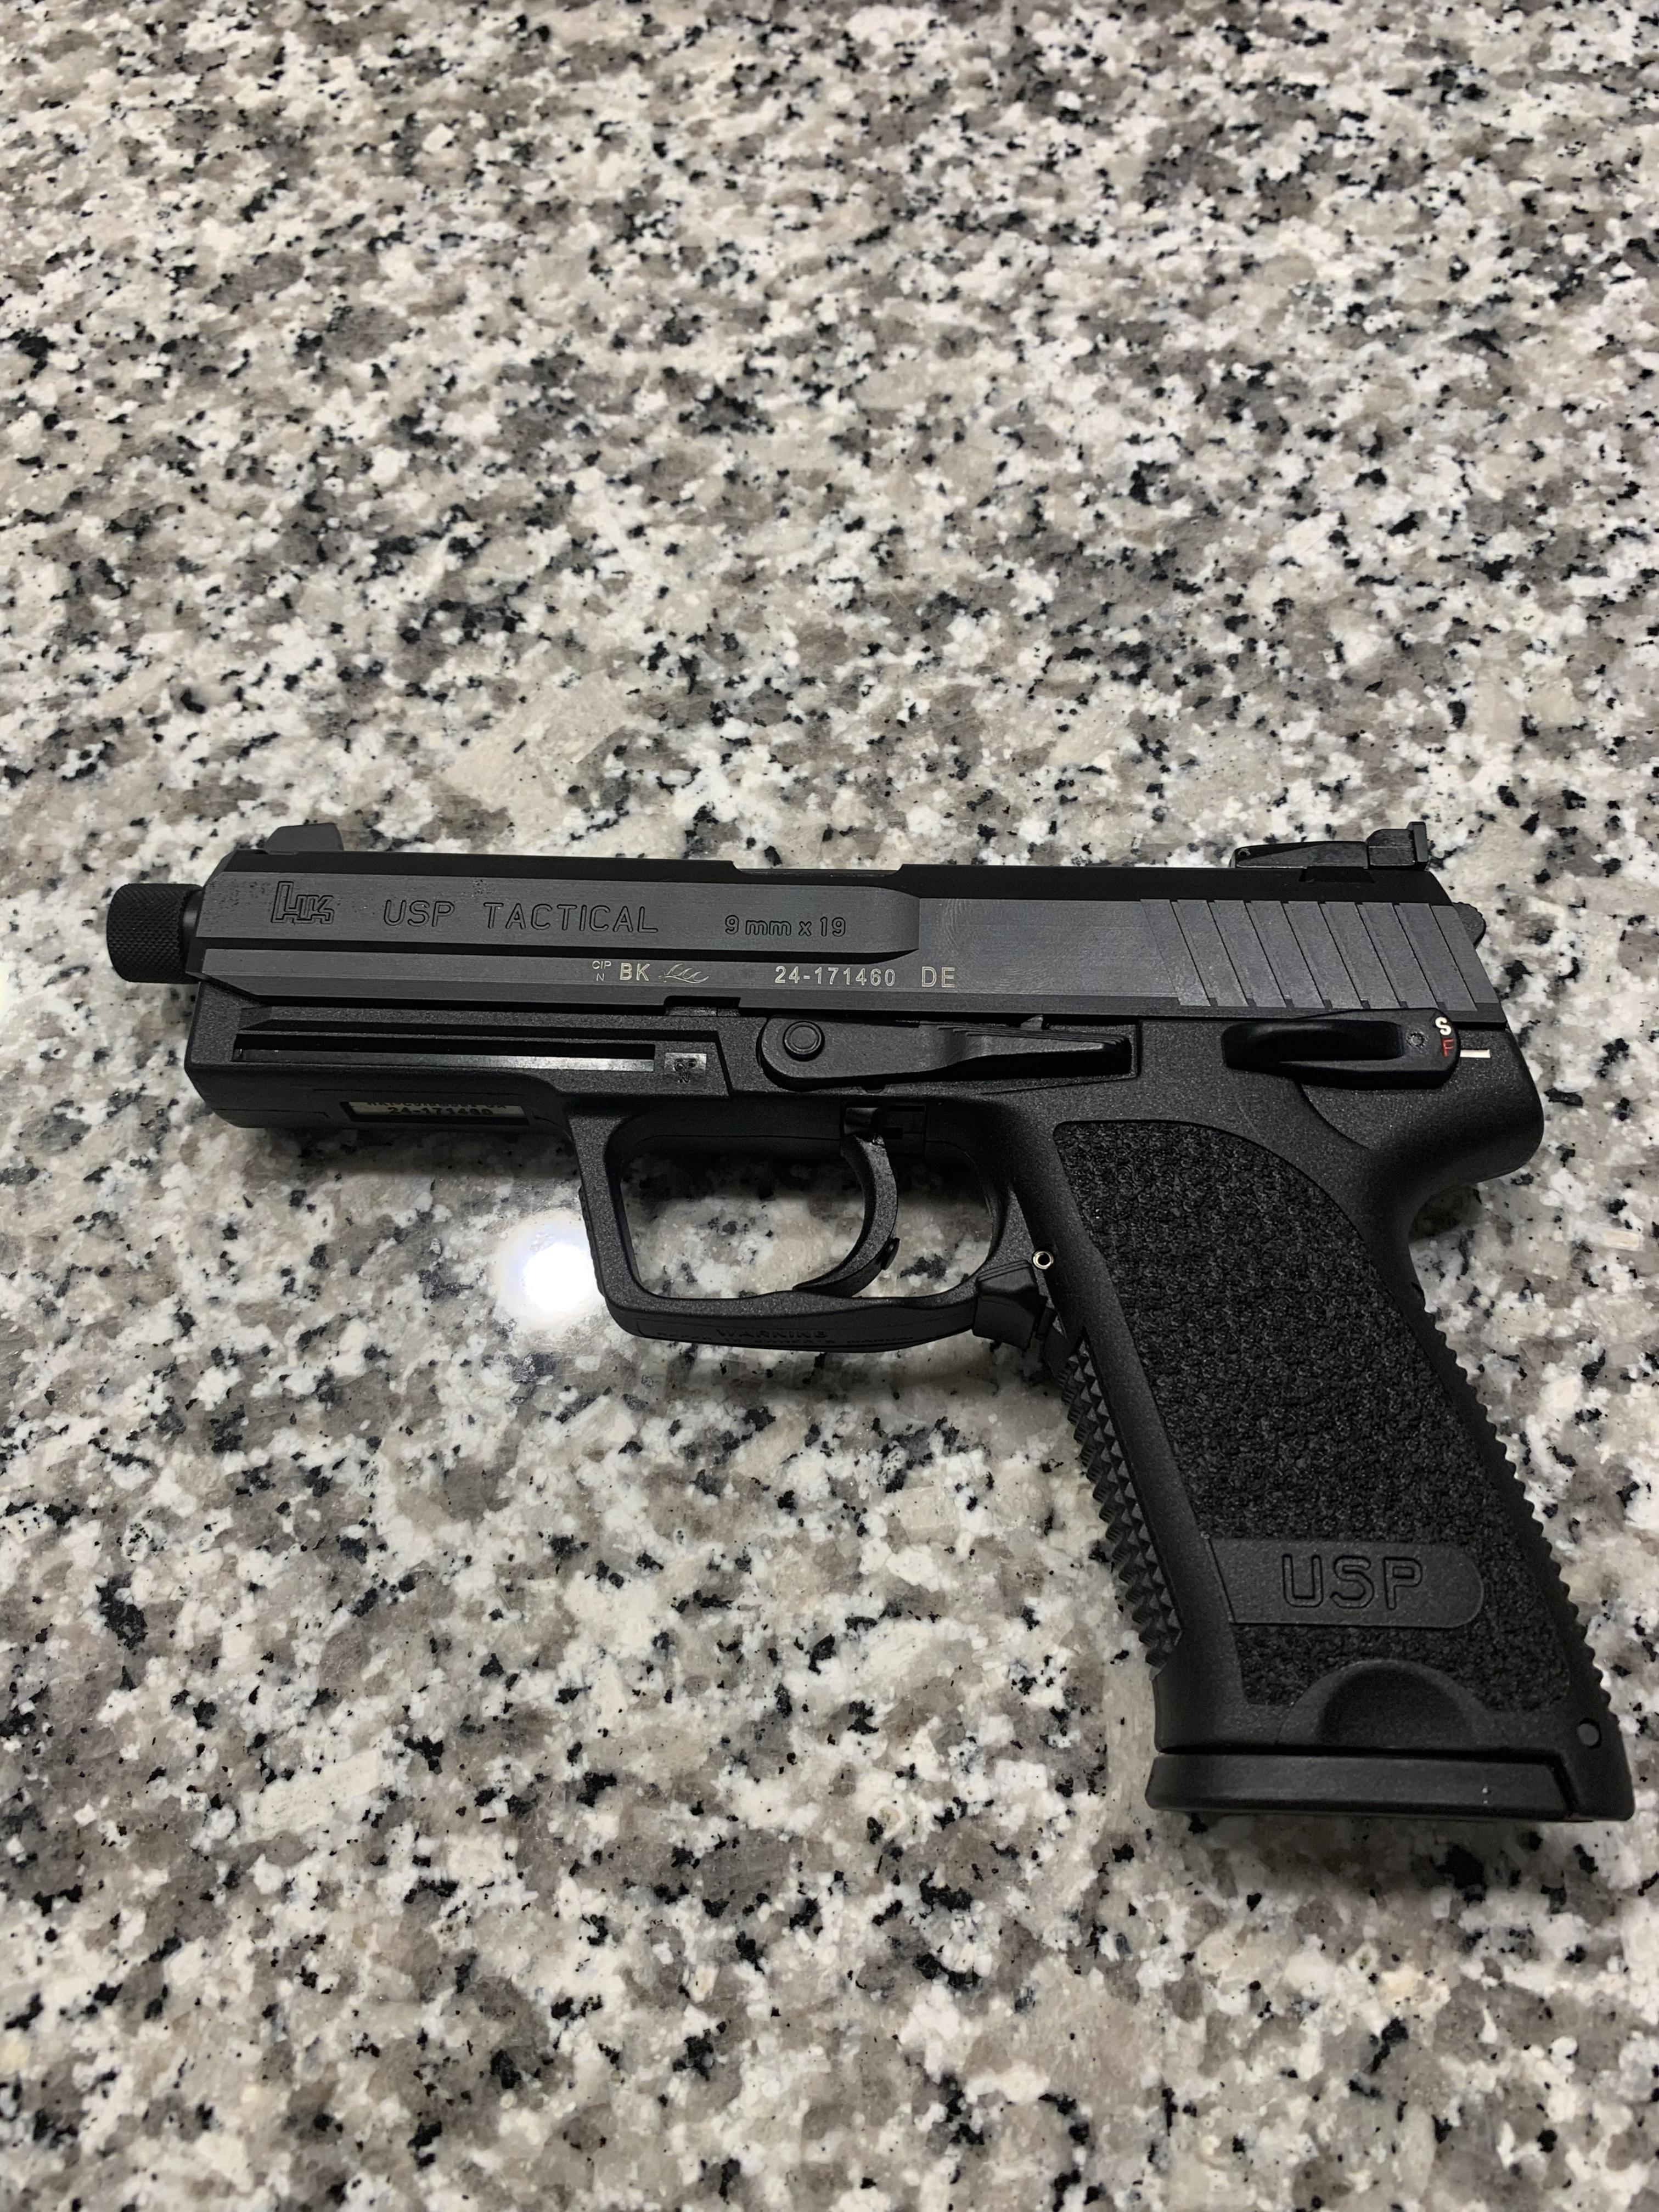 Went to the gun show and bought two USPs-img_2543.jpg